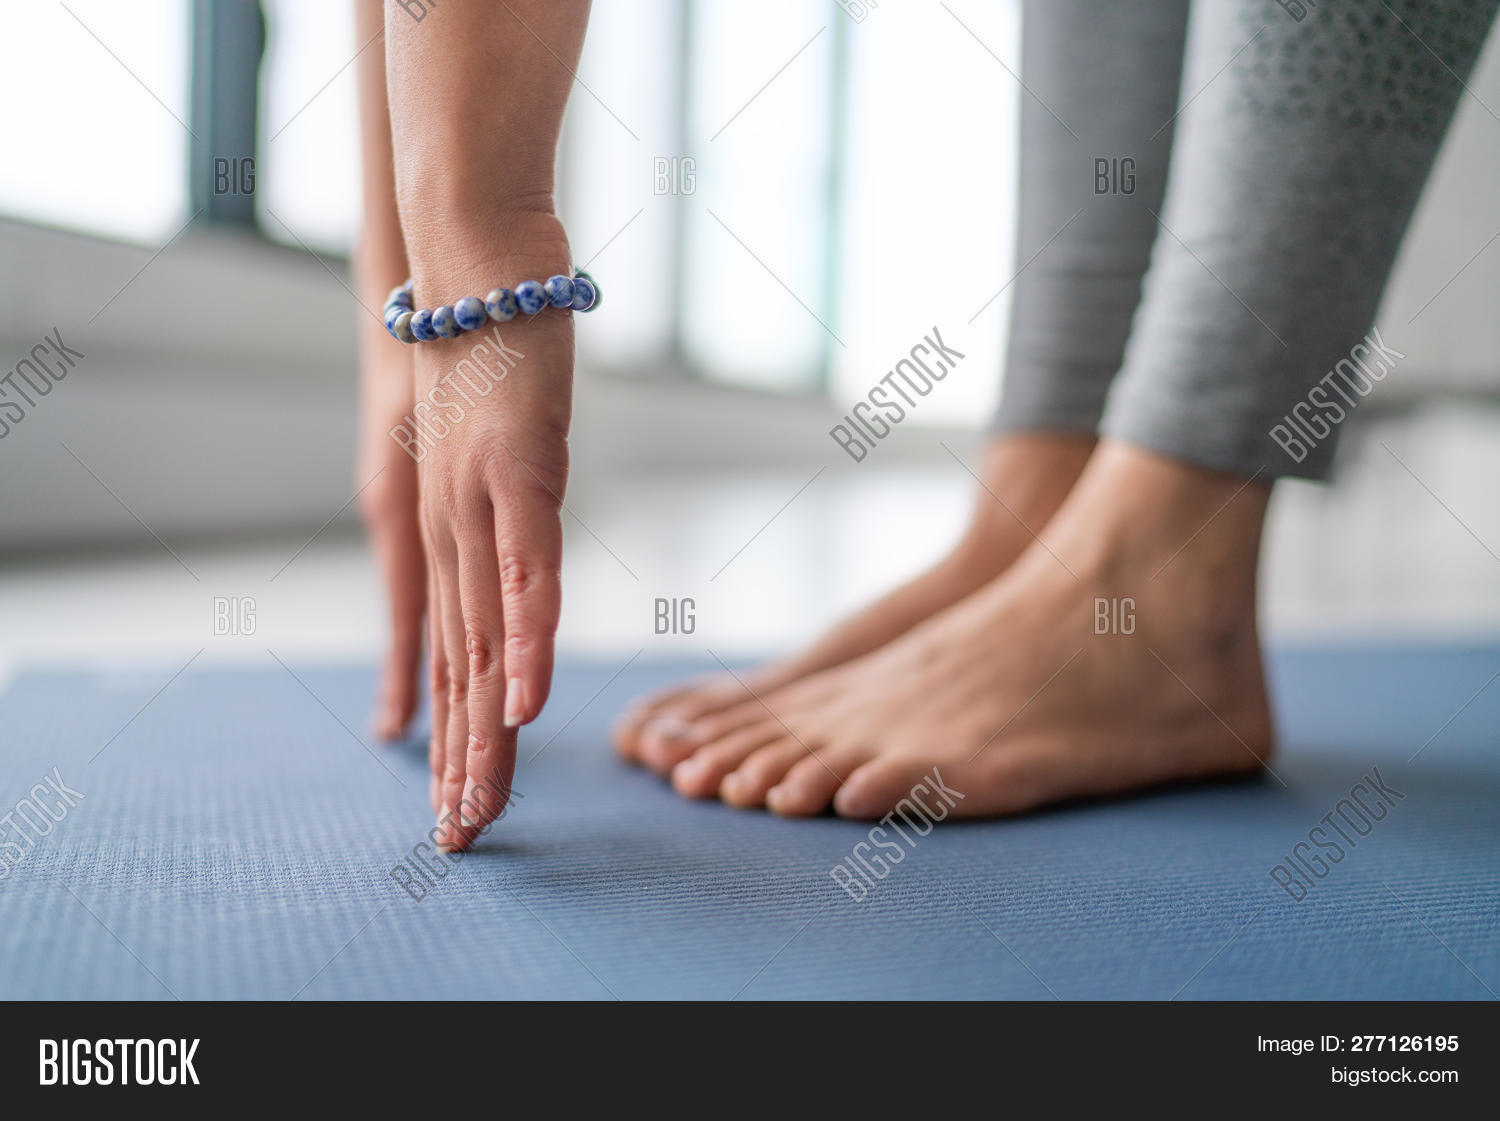 active,activewear,barefoot,blue,bracelet,class,clothes,clothing,exercise,feet,female,fit,fitness,floor,girl,gym,hands,interior,leggings,living,mat,meditating,meditation,morning,people,person,relaxation,relaxing,room,routine,salutation,sport,sportswear,stretches,studio,sun,teacher,tights,toes,training,wellness,woman,women,working,workout,yoga,yogi,zen